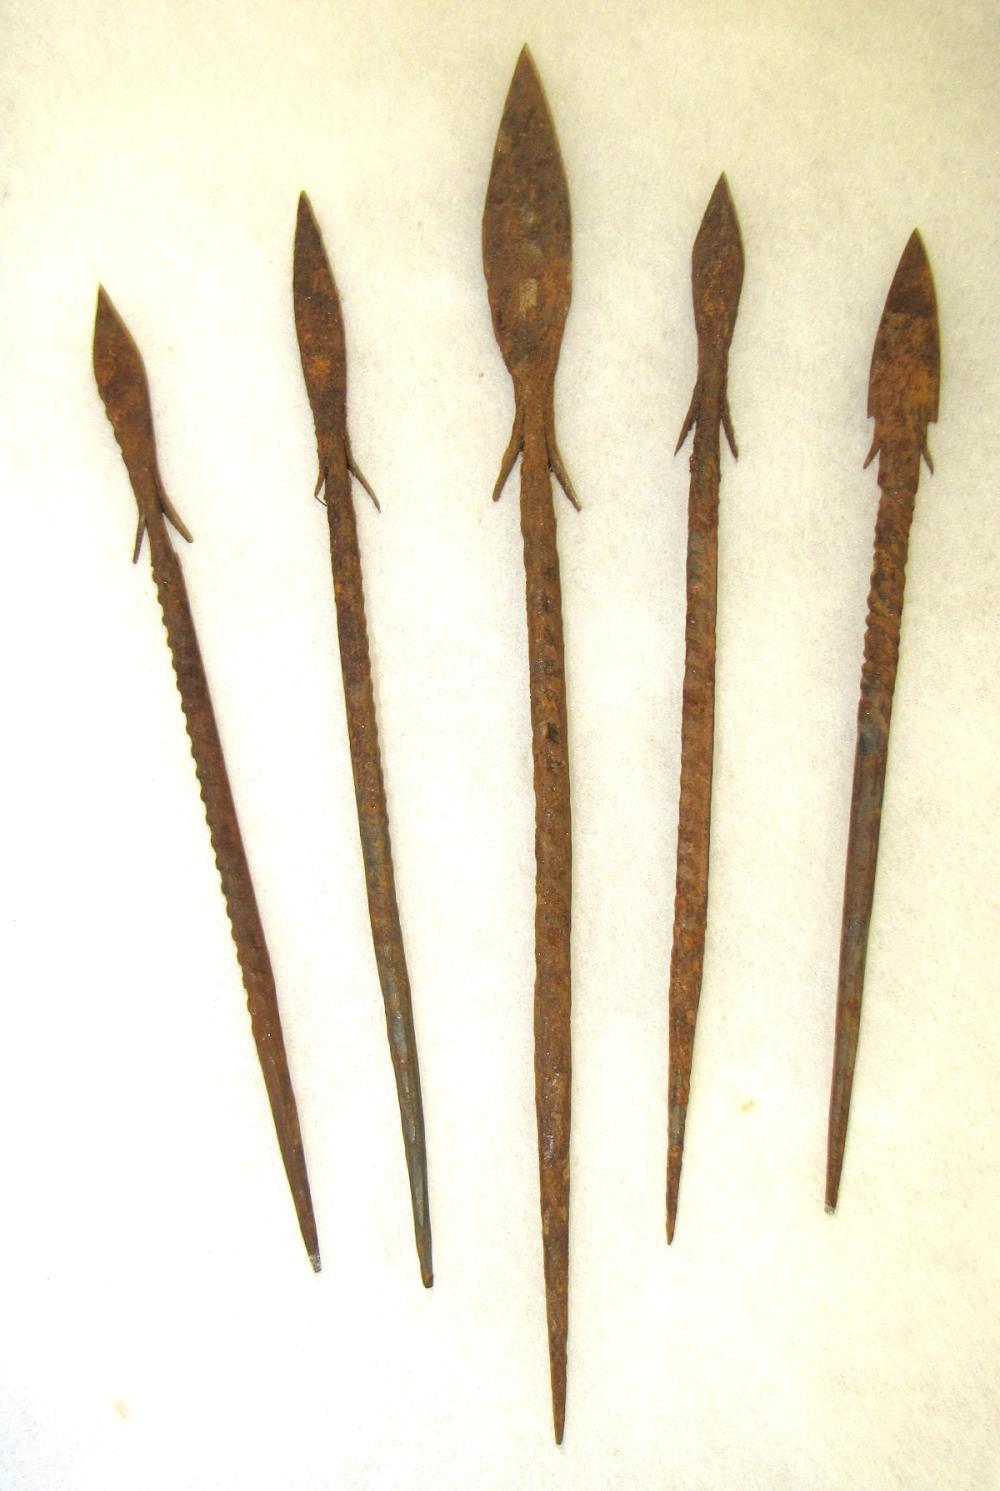 Five Antique Hand Forged Metal Spears